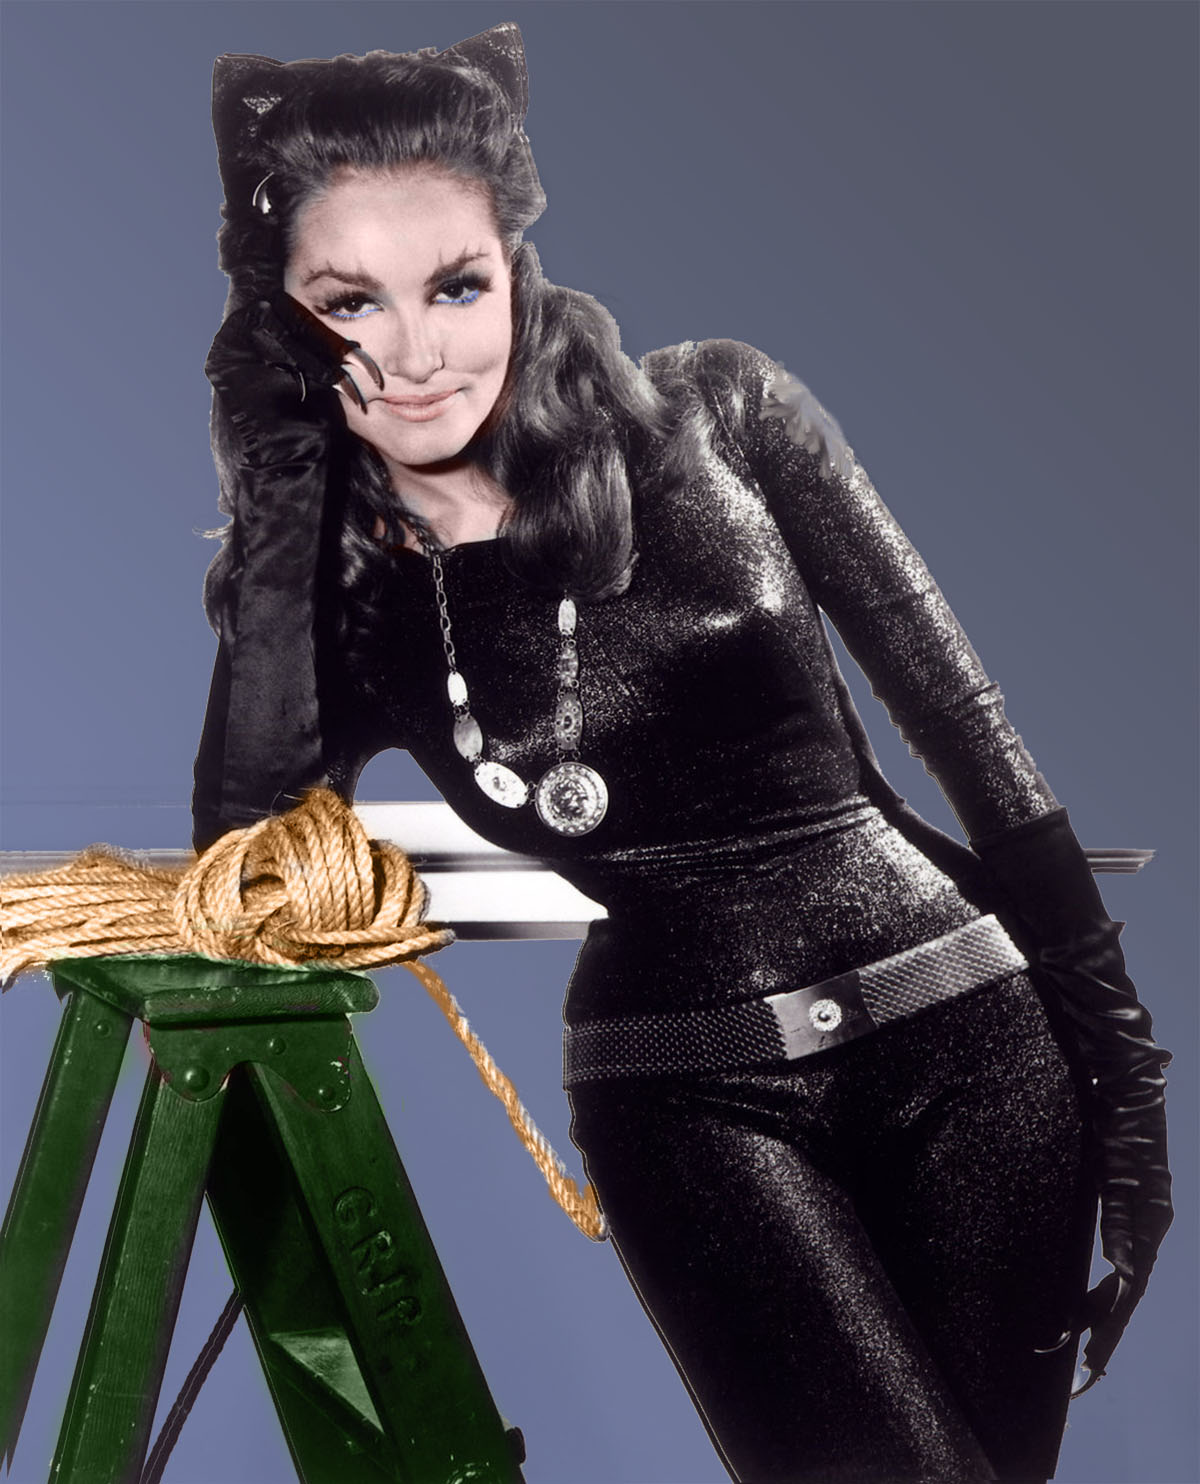 the old catwoman julie newmar